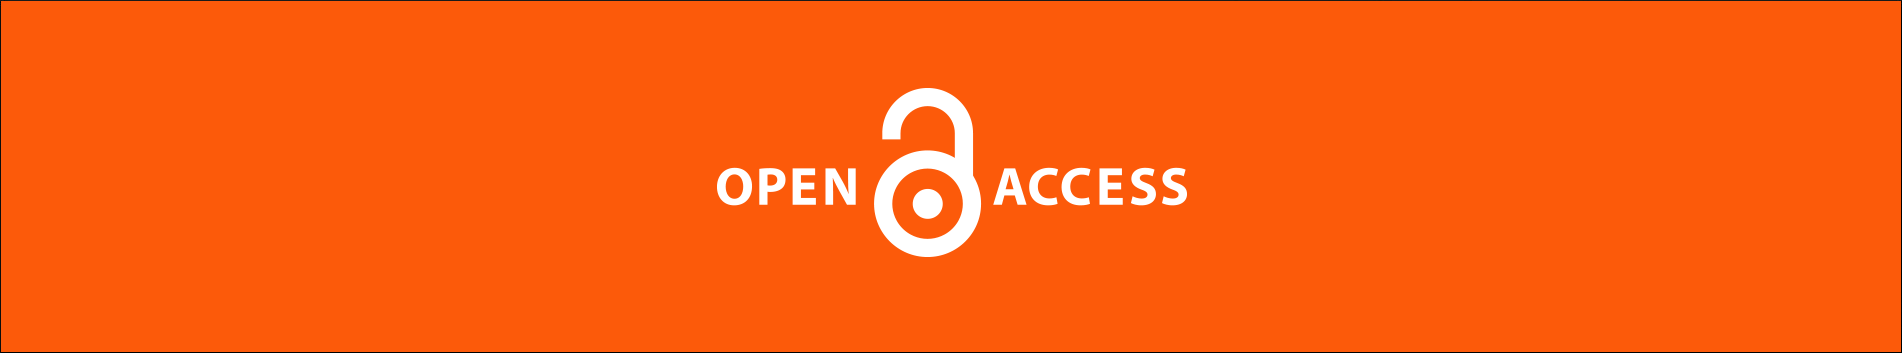 SXSW Panel: Vote to get Open Access on the agenda feature image